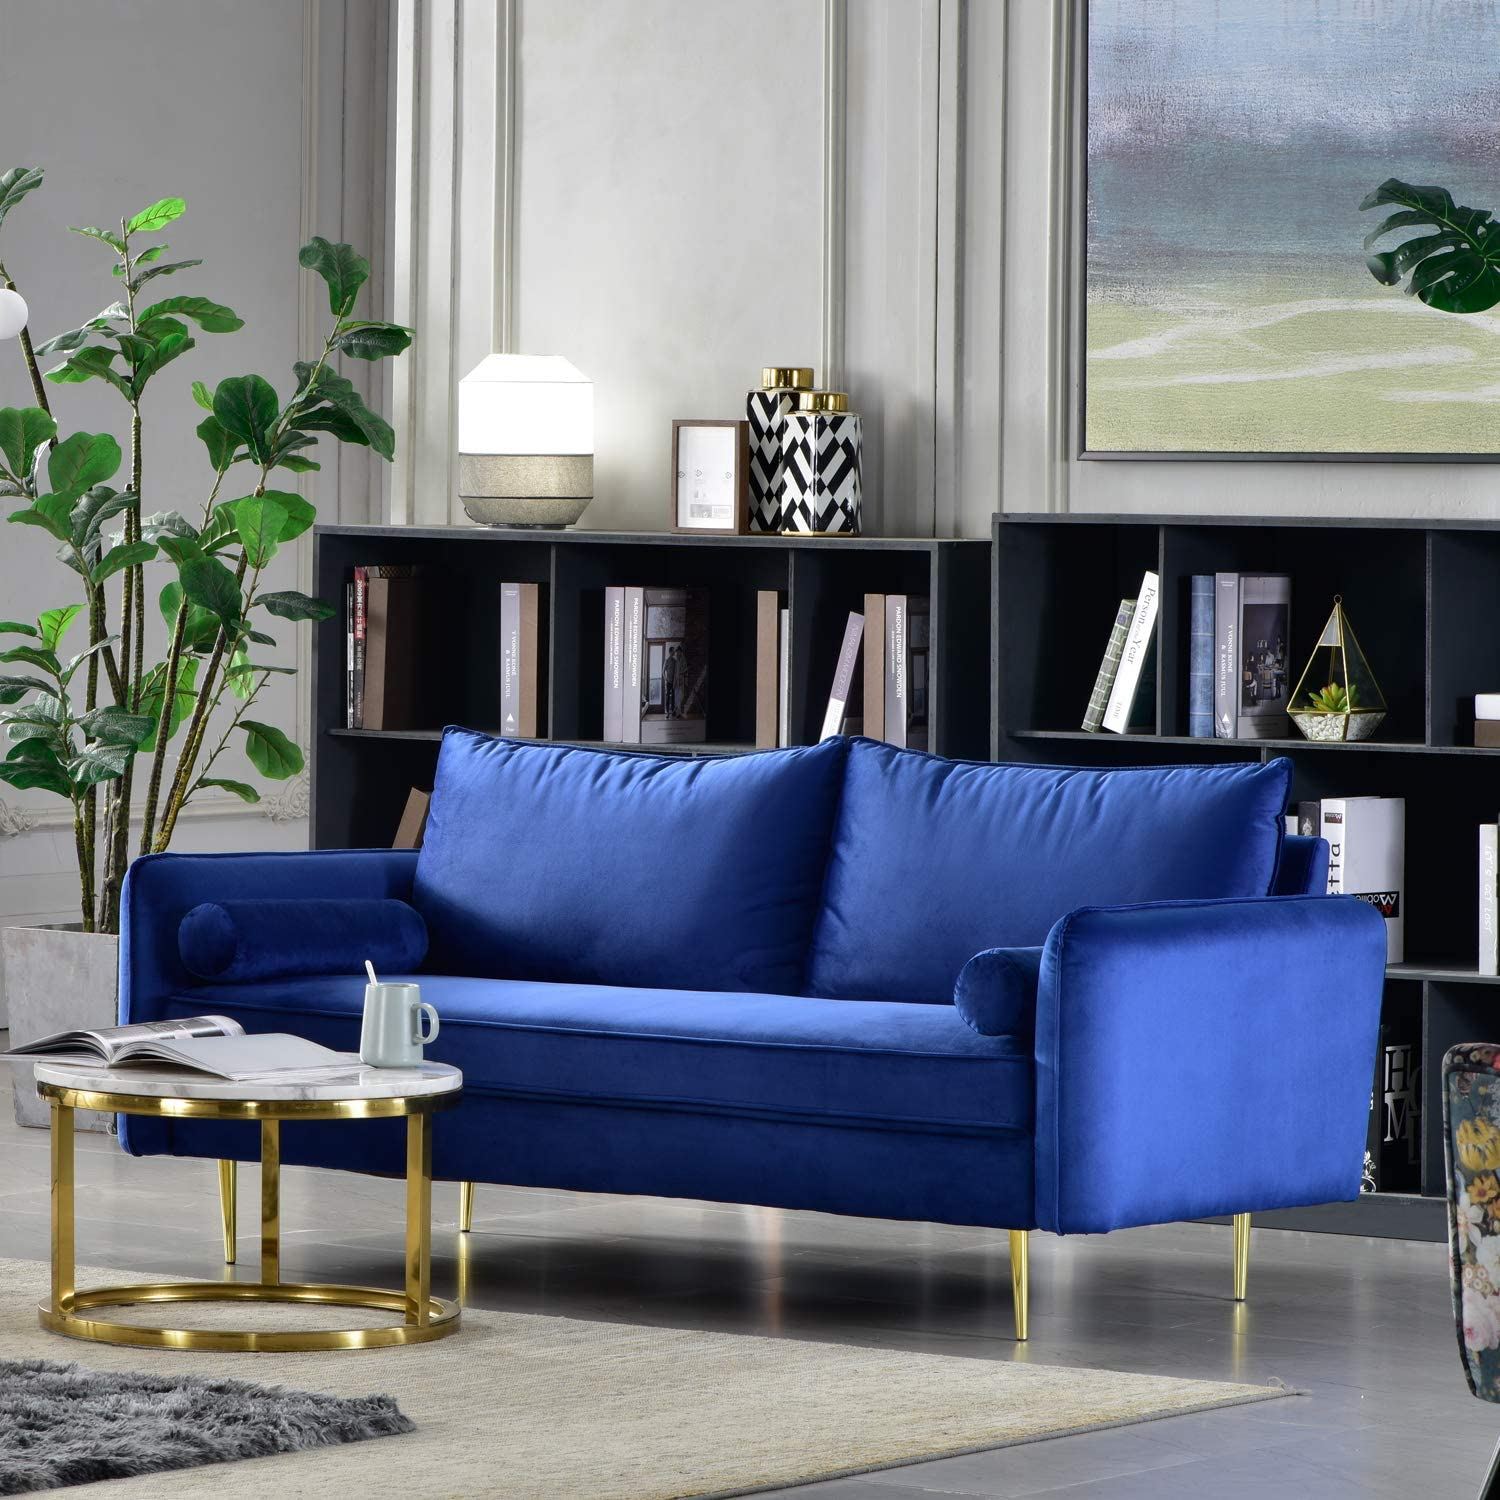 Ovios High Back Couch,Mid-Centry Spring Upholstered Sofa,3 inch Velvet  Fabric Futon with Metal Golden Leg for Living Room or Bedroom. (Blue-Gold